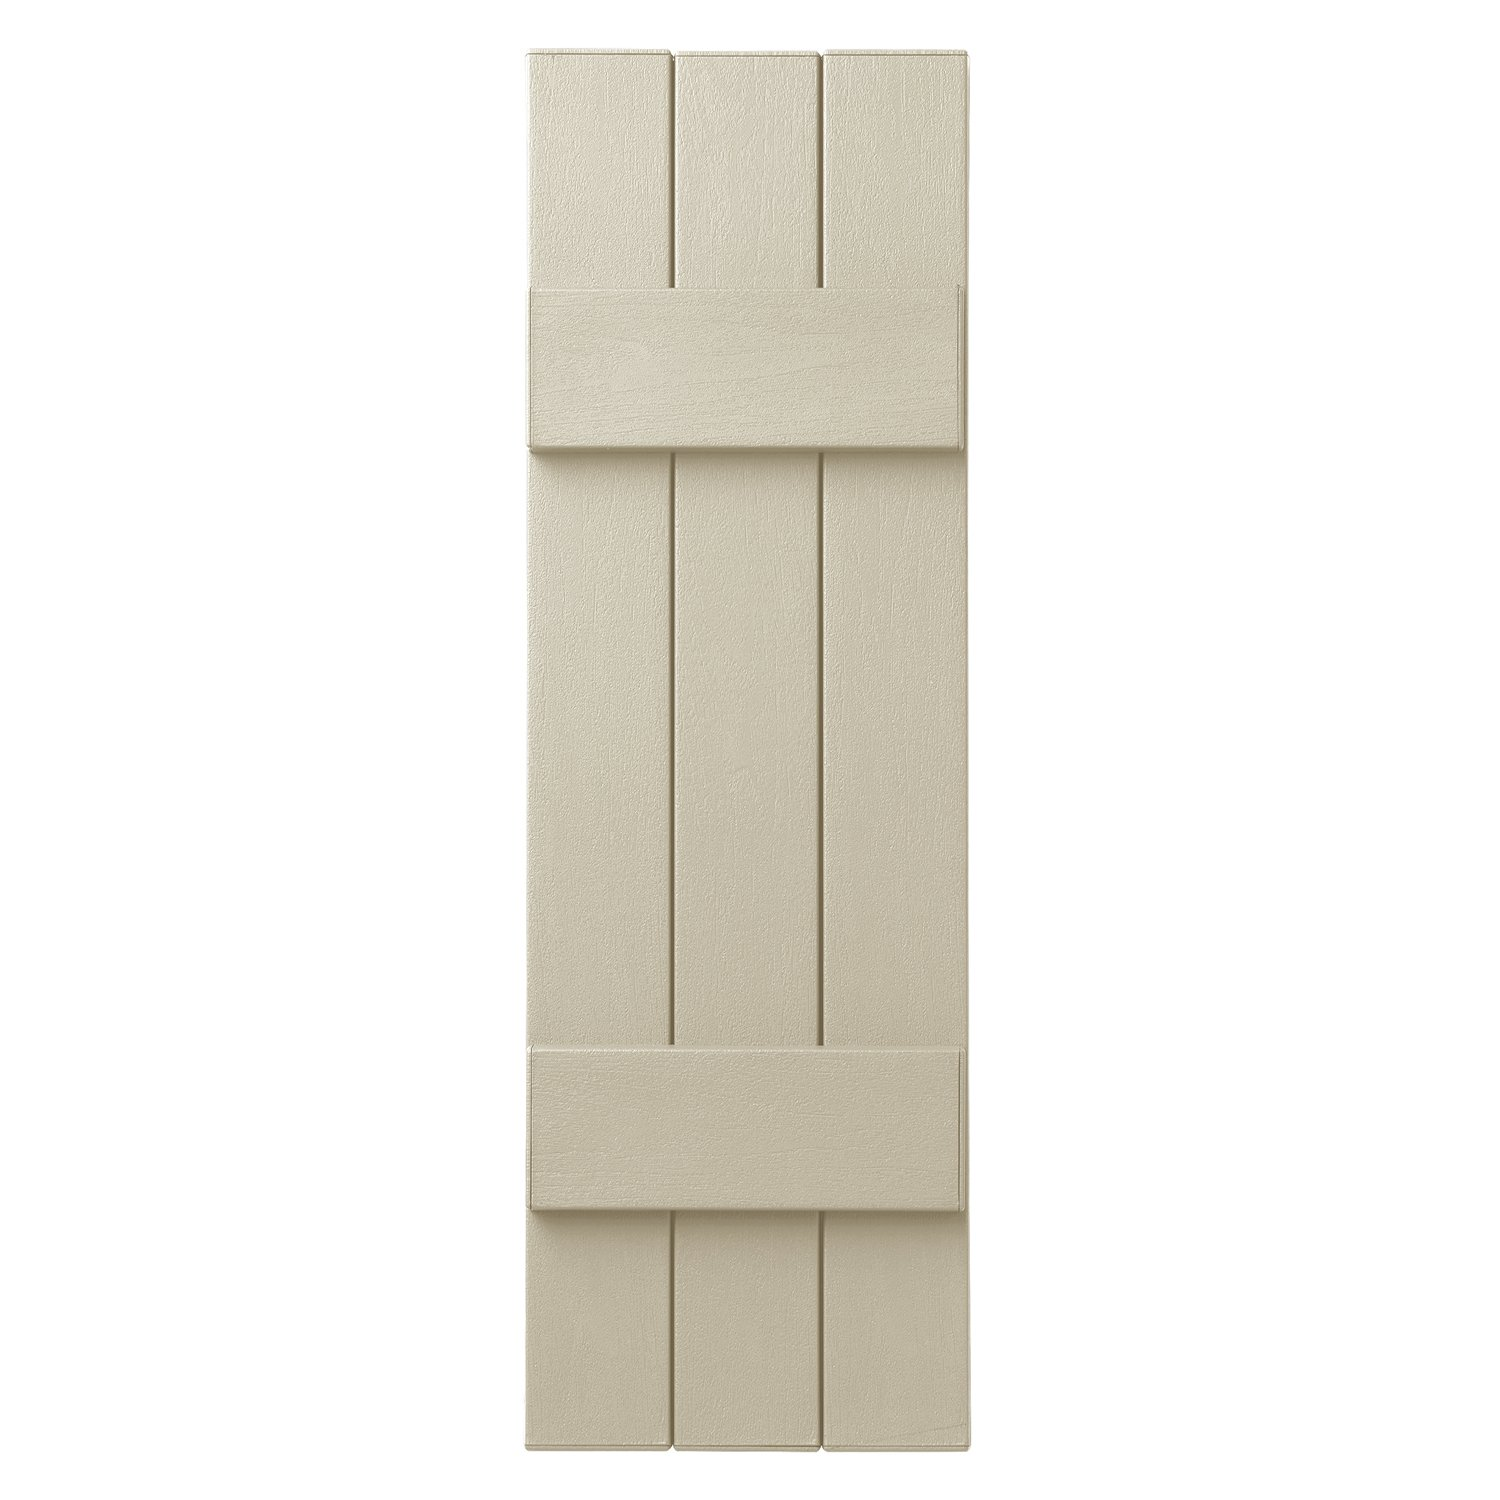 Ply Gem Shutters and Accents VIN3C1143 CRM 3 Board